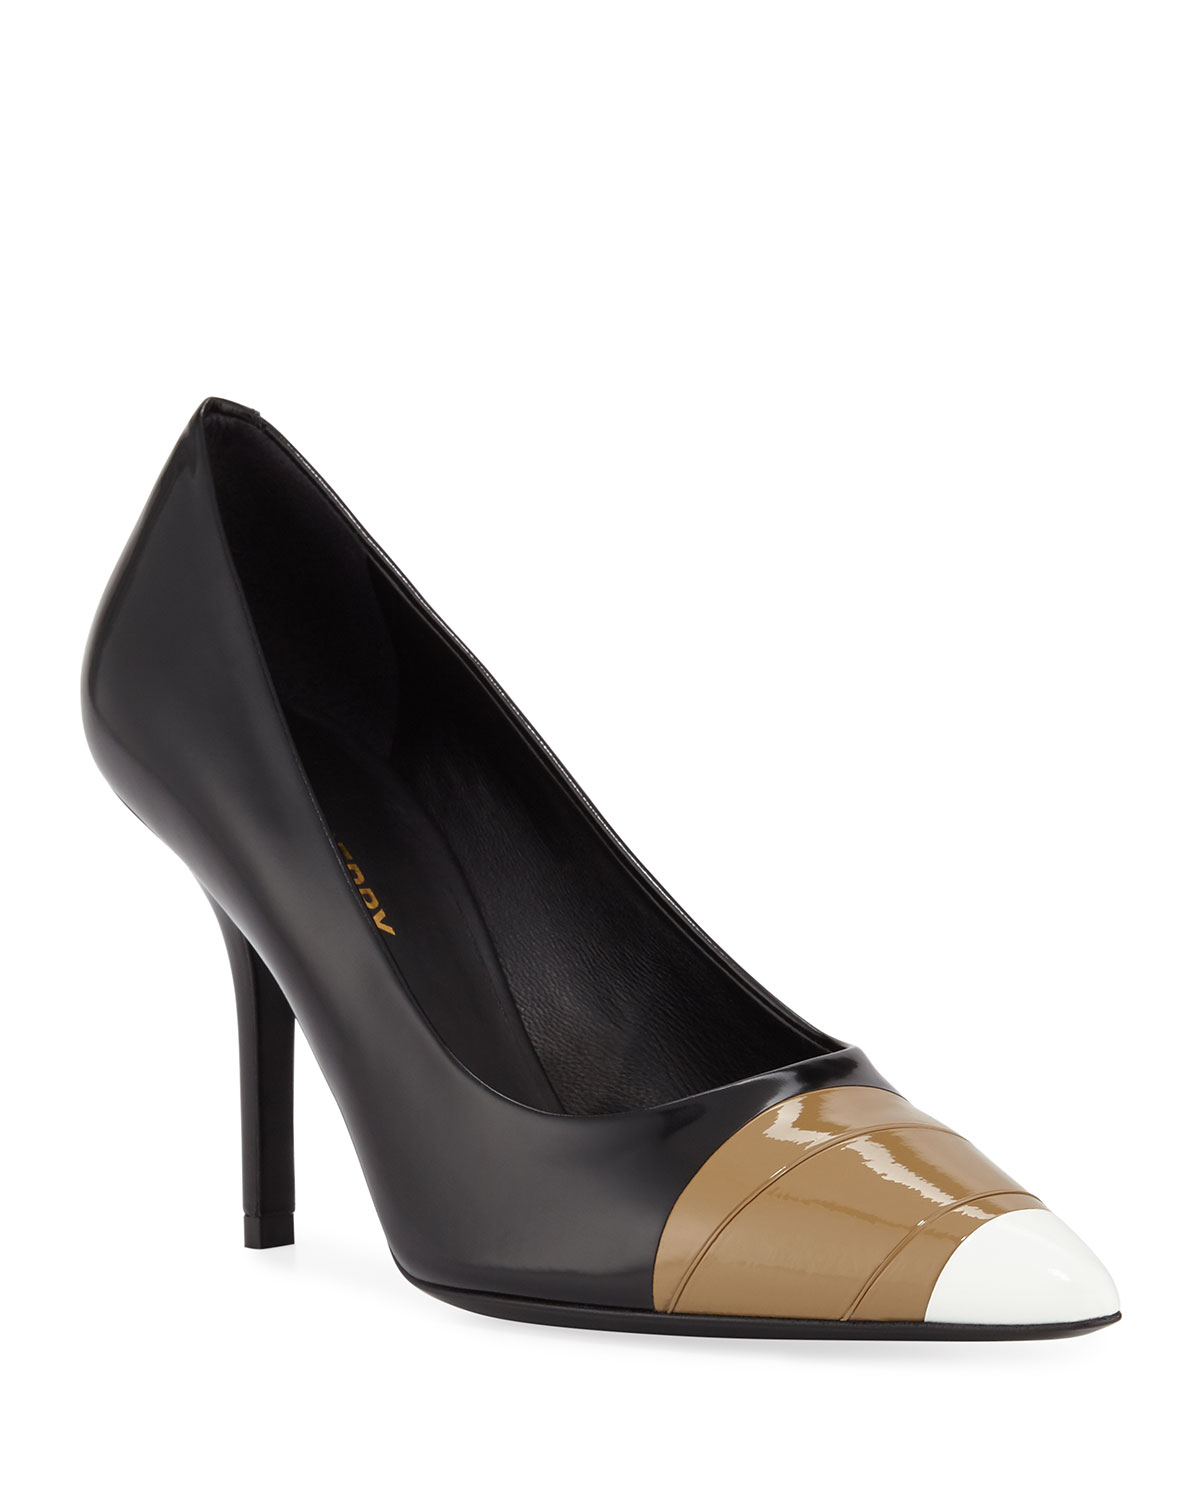 Annalise Mixed-Media Runway Pumps, Black